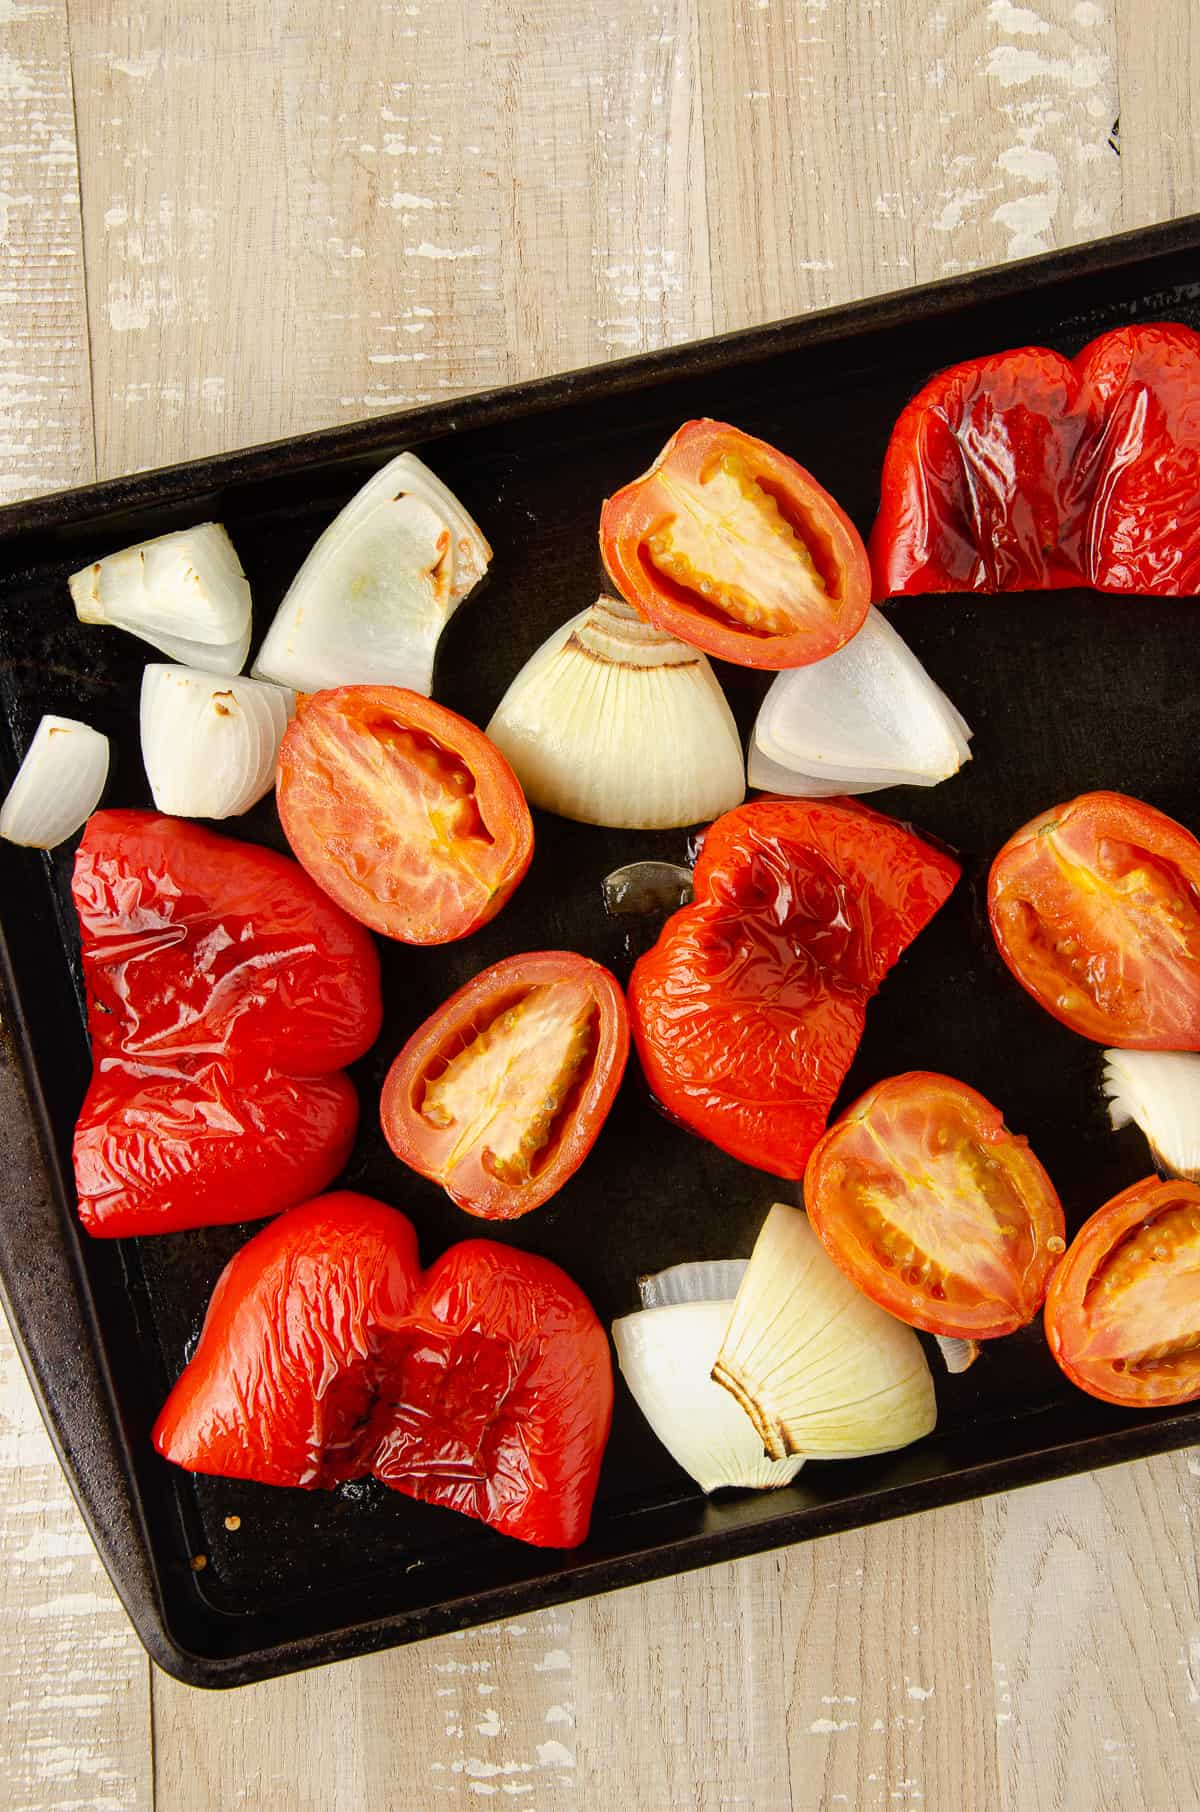 Roasted red peppers, roma tomatoes, and onion on a baking sheet.